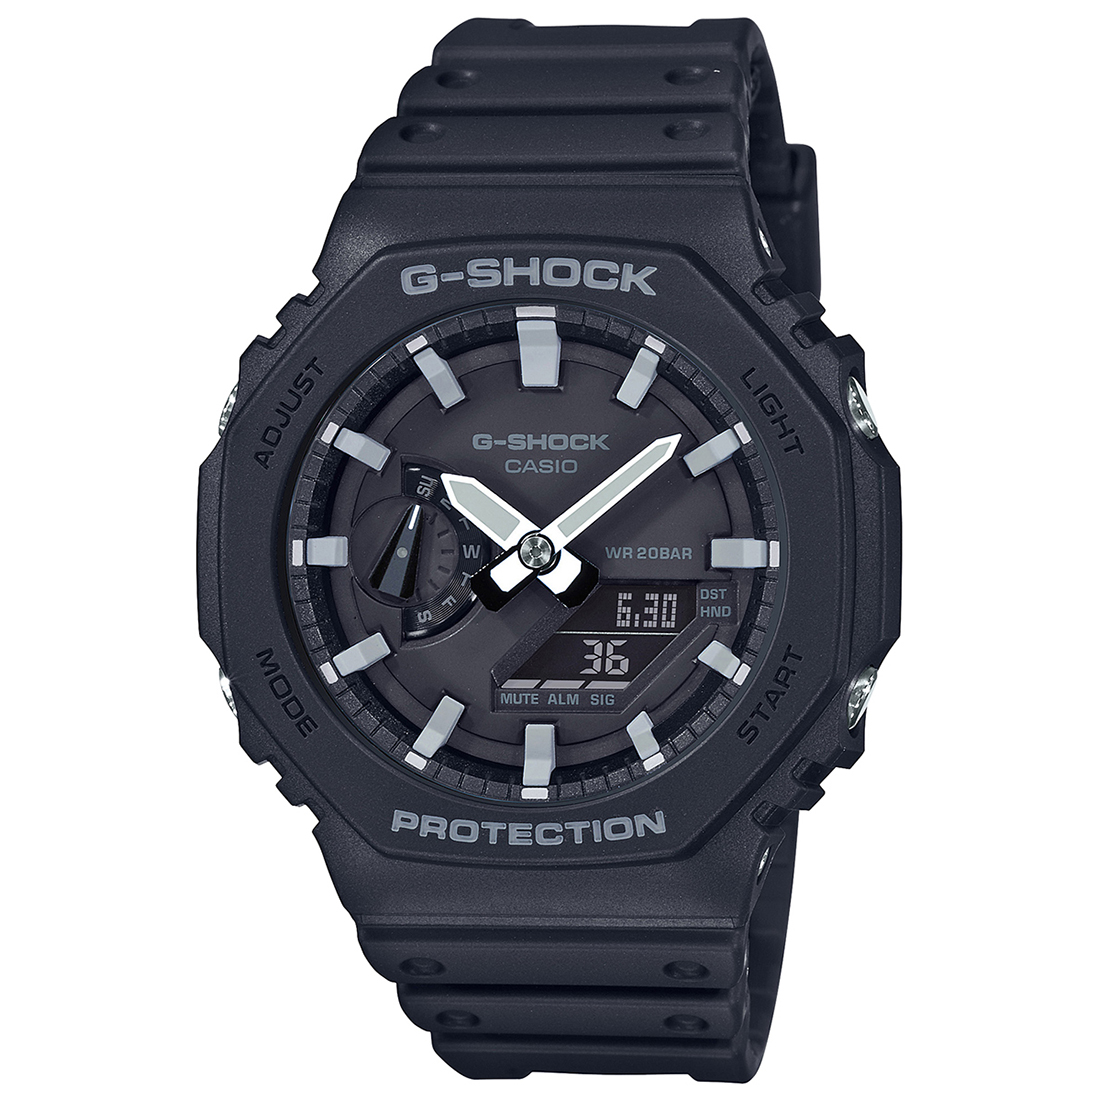 Casio G-Shock GA-2100-1ADR (G986) Carbon Core Guard Men's Watch-G986